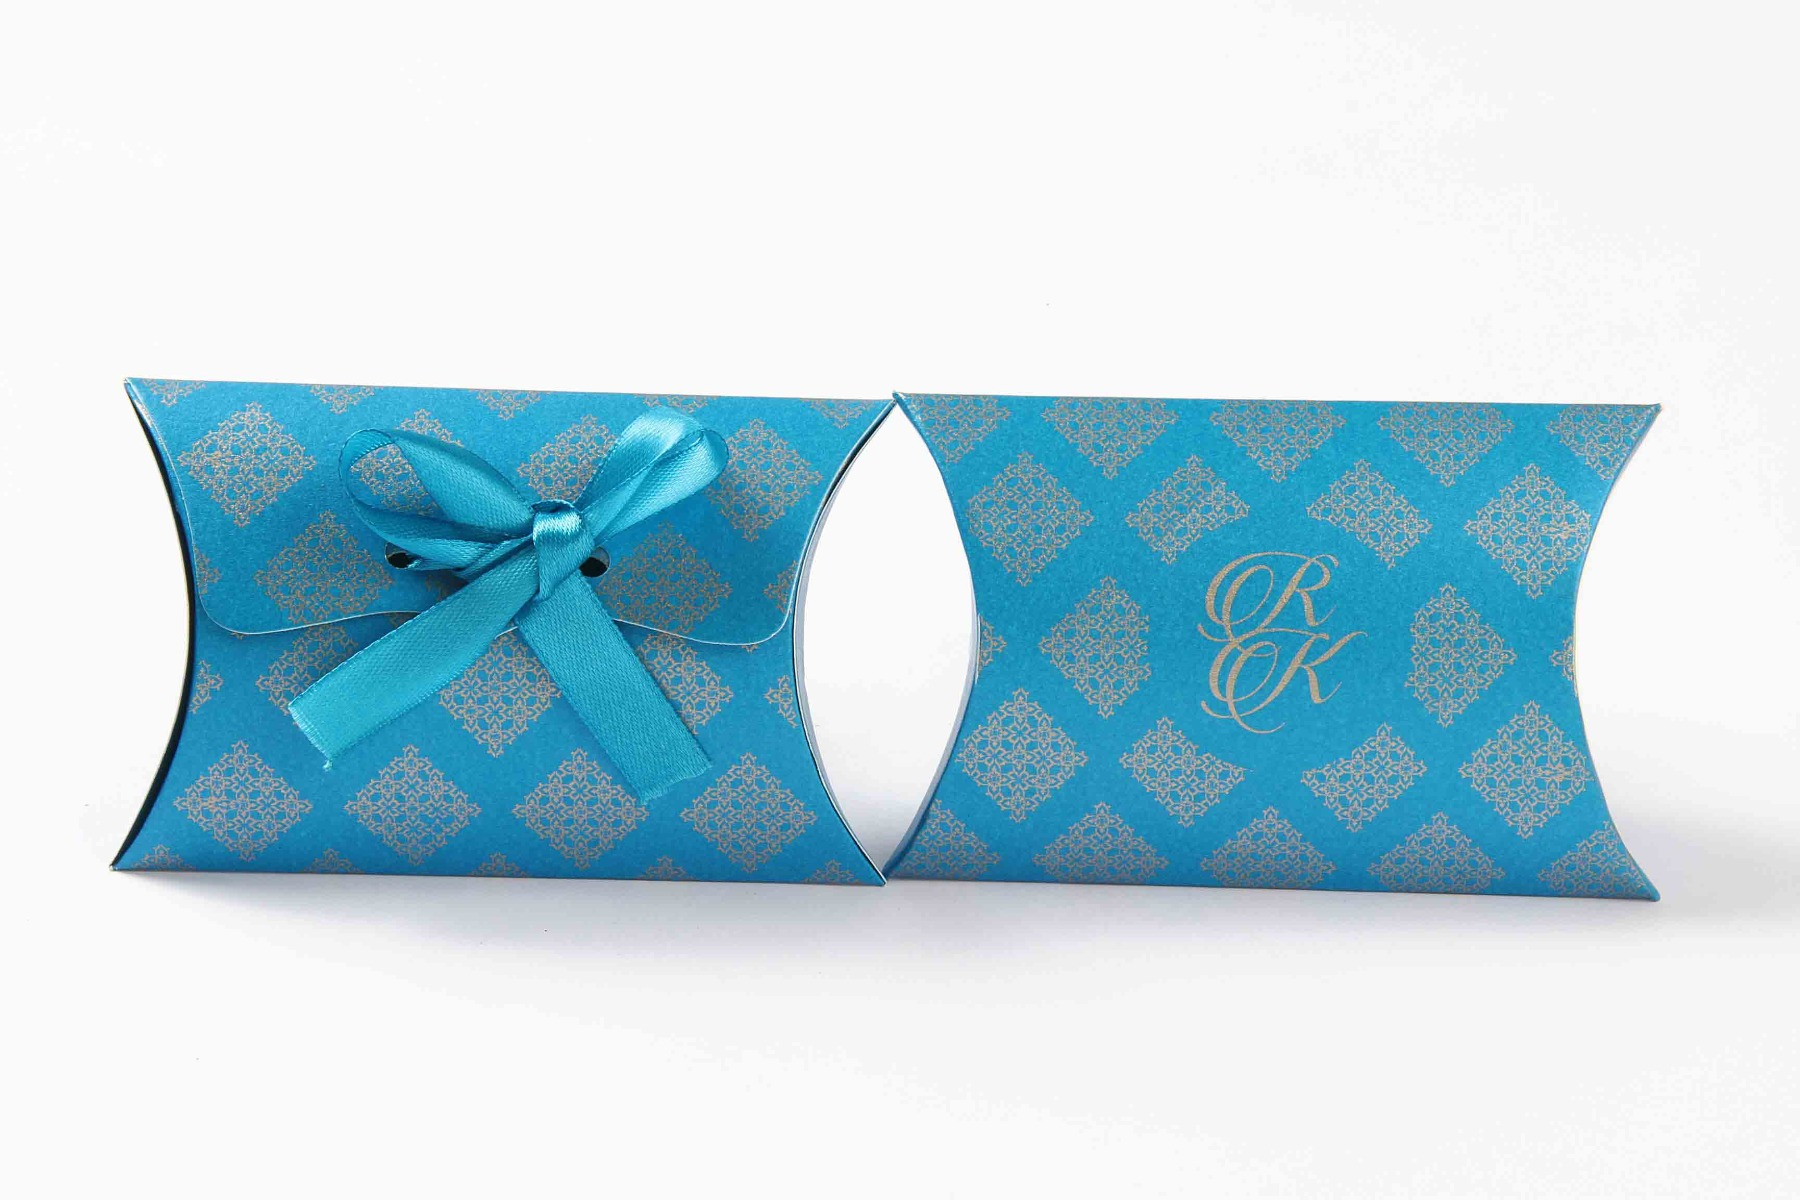 Pillow Favor Box No 9 - Firoze Blue-8659